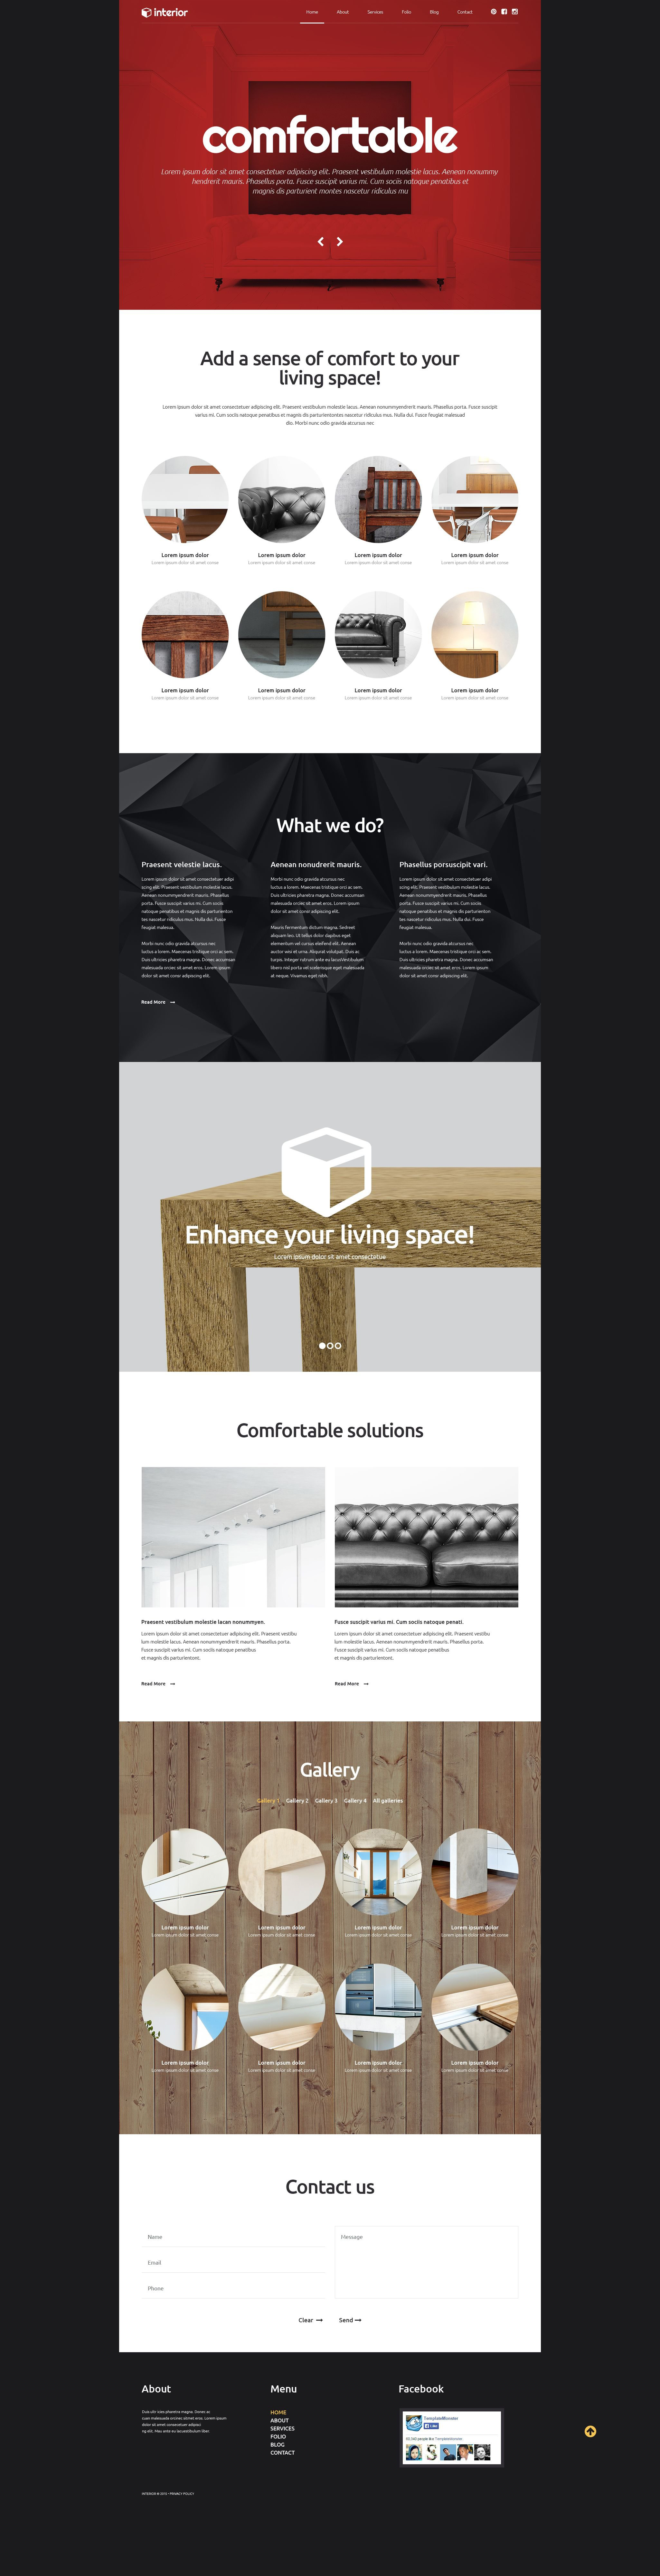 The Interior Furniture Company Design WordPress Design 54038, one of the best WordPress themes of its kind (art & photography, most popular), also known as interior furniture company design WordPress template, home solution WordPress template, interior WordPress template, profile designer WordPress template, portfolio WordPress template, non-standard WordPress template, creative idea WordPress template, mirror WordPress template, clock WordPress template, cutlery WordPress template, lighting WordPress template, ceiling WordPress template, bathroom WordPress template, kitchen WordPress template, live WordPress template, table WordPress template, chair WordPress template, armchair WordPress template, sofa WordPress template, order WordPress template, client WordPress template, support WordPress template, service WordPress template, decoration WordPress template, style WordPress template, collection WordPress template, catalogue and related with interior furniture company design, home solution, interior, profile designer, portfolio, non-standard, creative idea, mirror, clock, cutlery, lighting, ceiling, bathroom, kitchen, live, table, chair, armchair, sofa, order, client, support, service, decoration, style, collection, catalogue, etc.